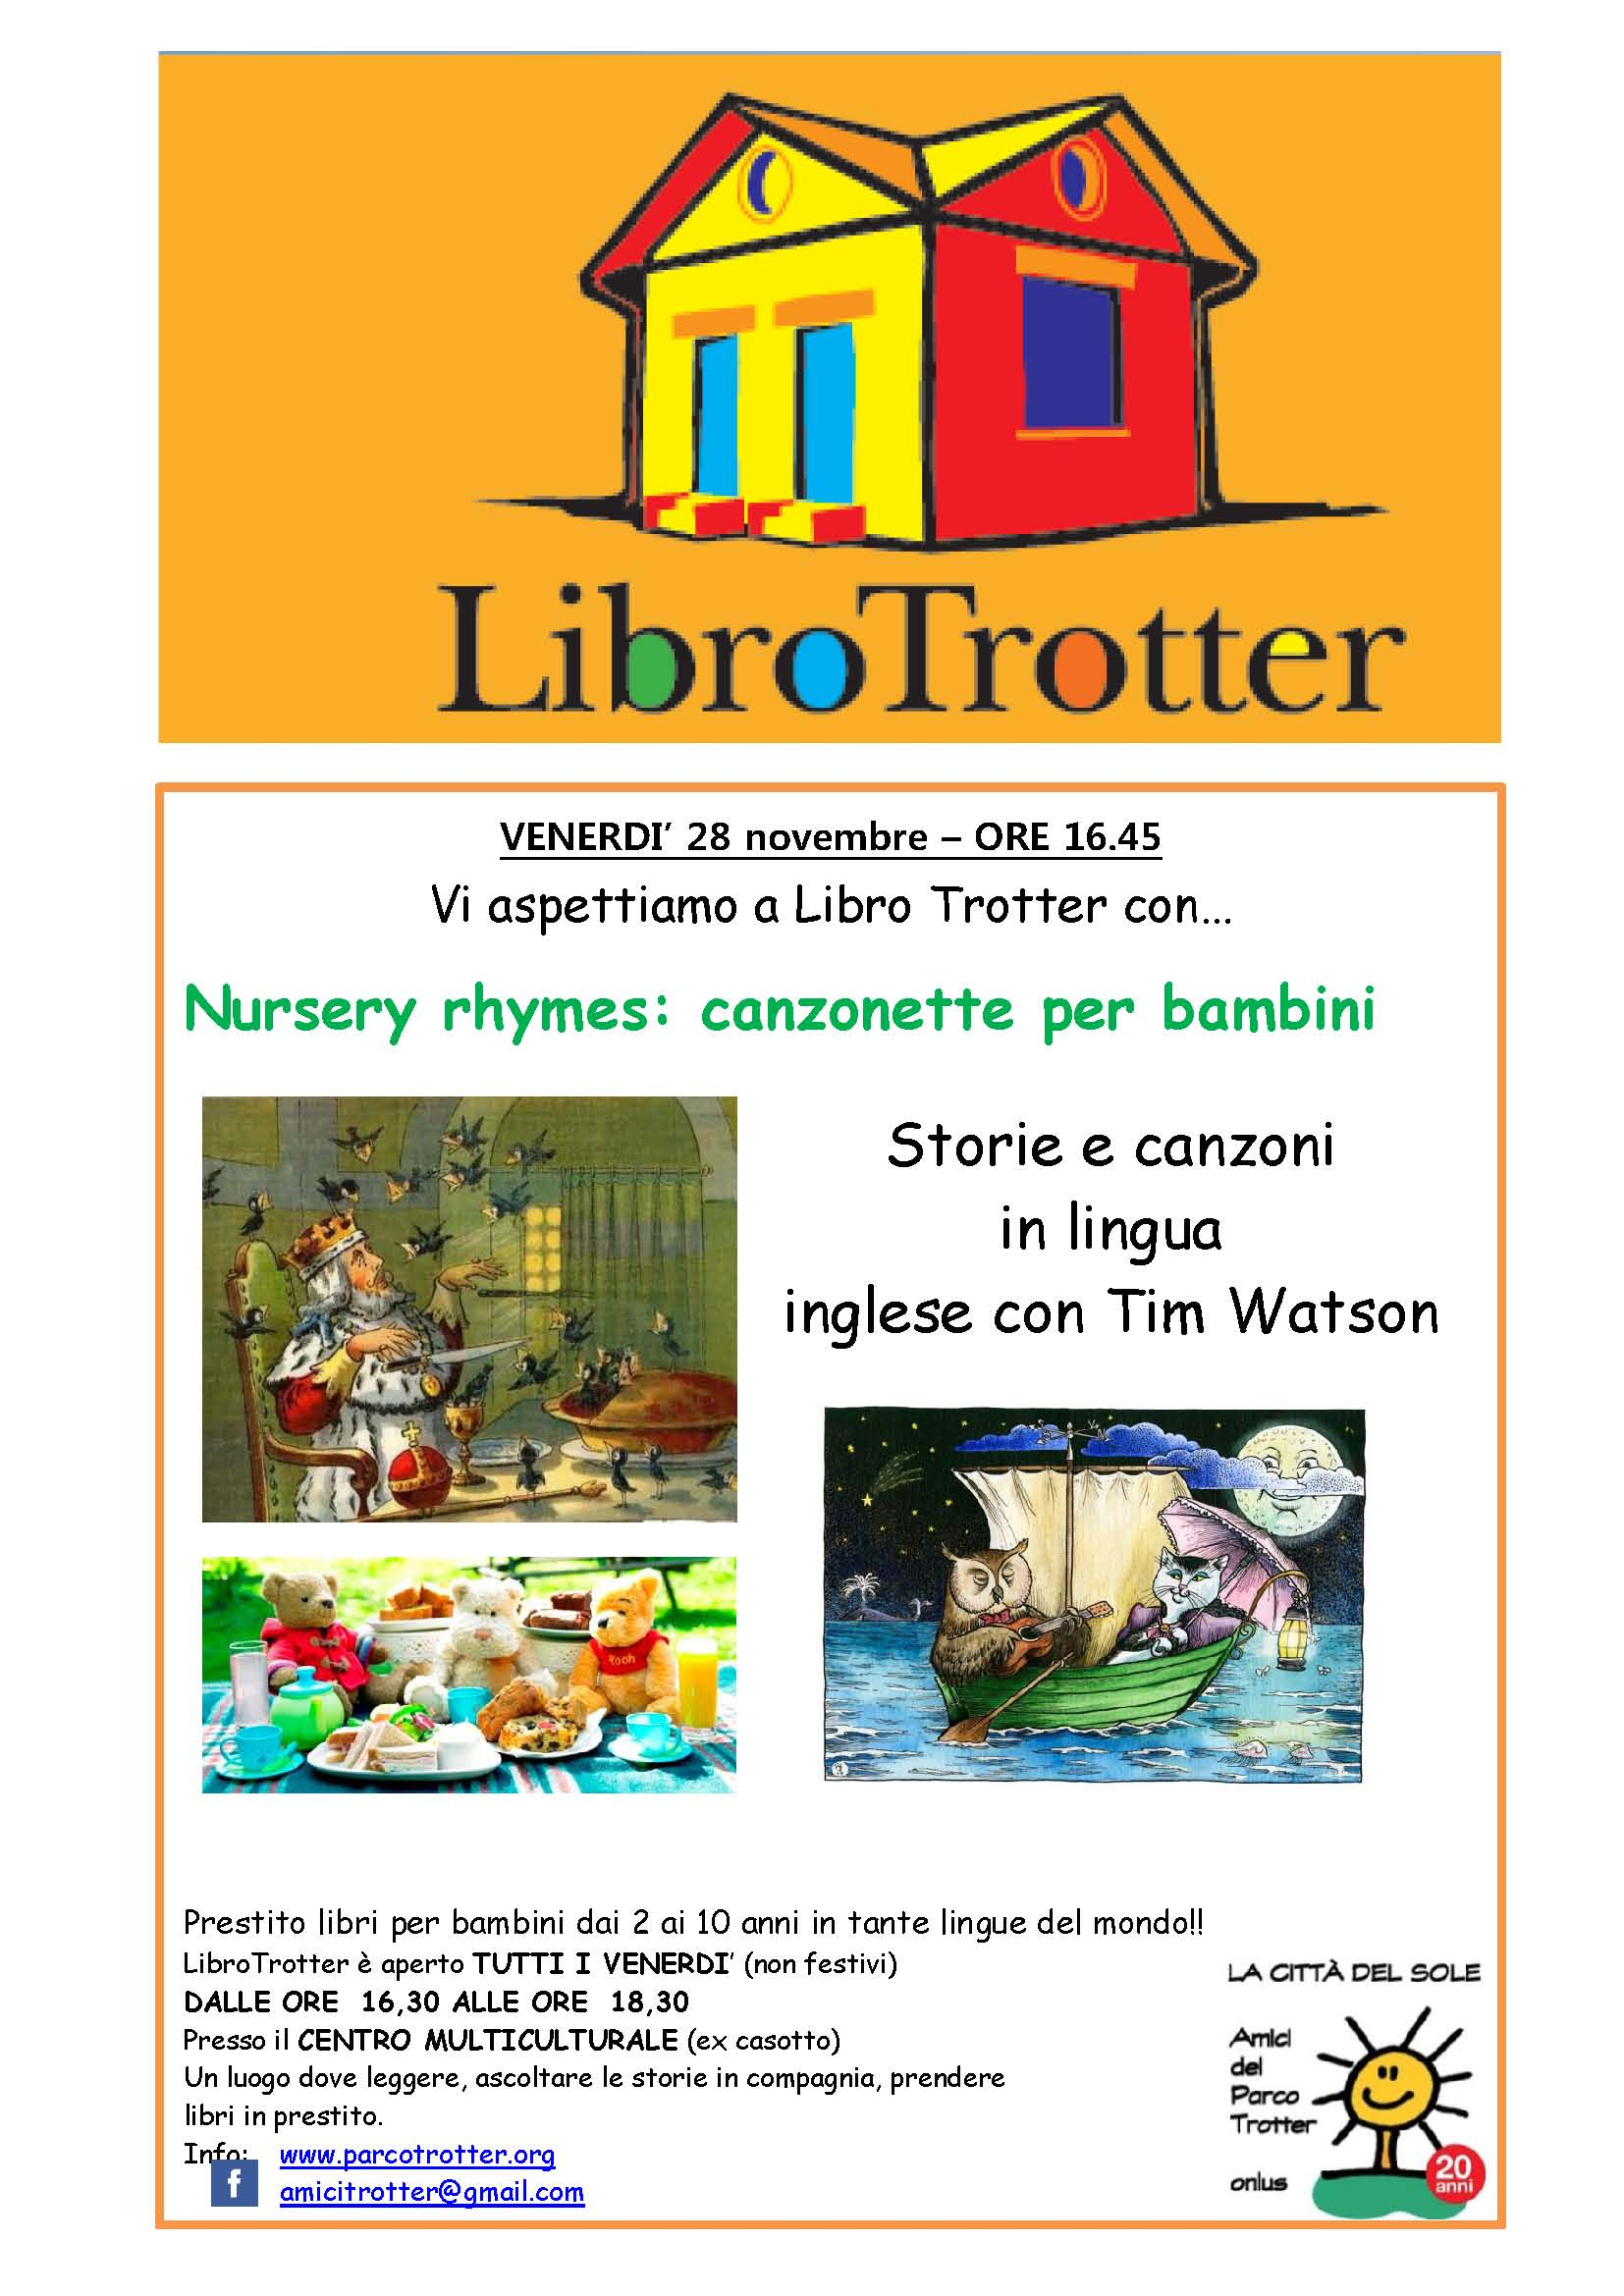 librotrotter 28 nov.